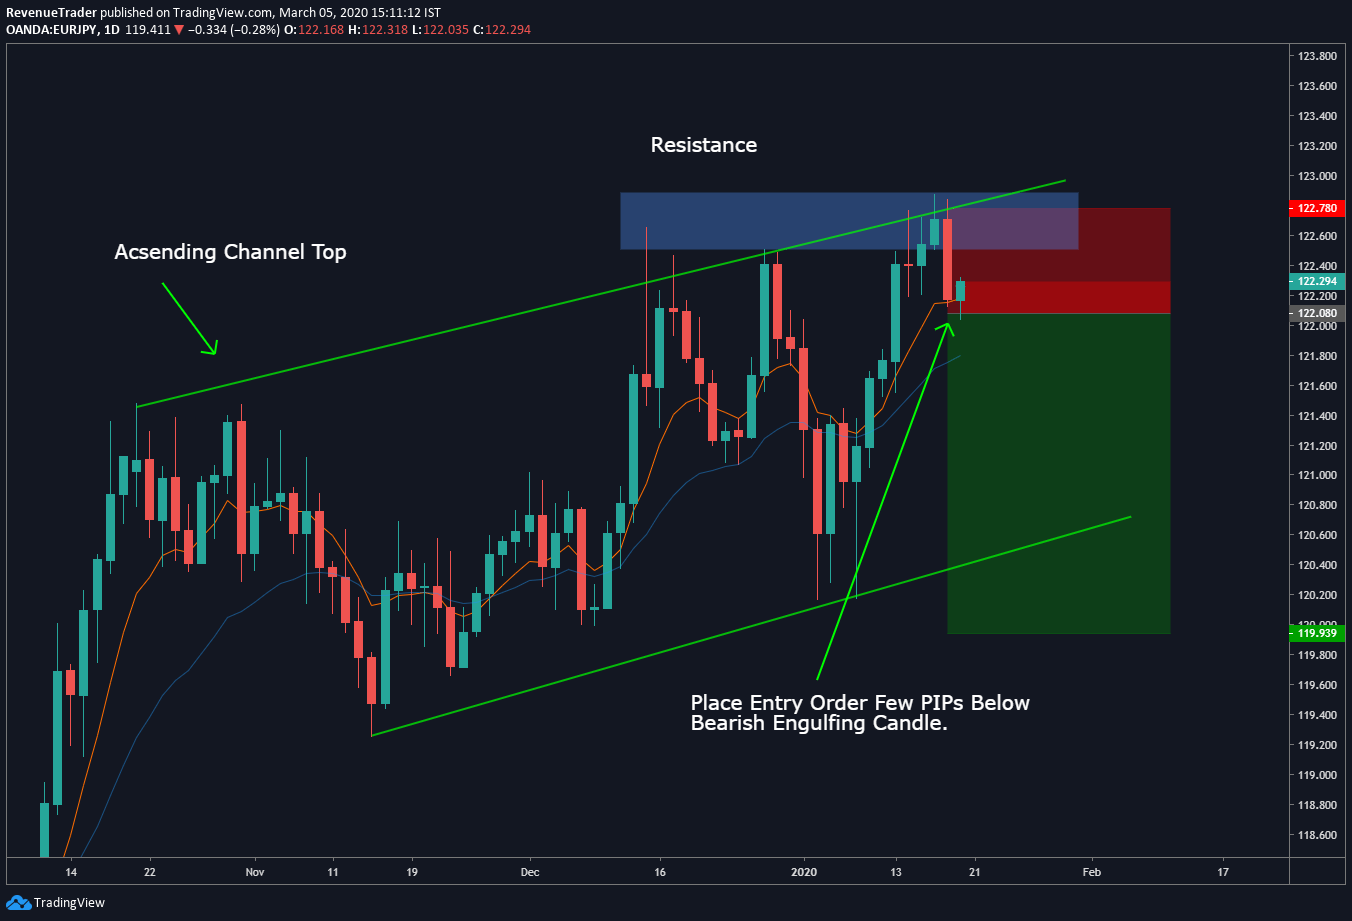 Bearish engulfing price action patter at both resistance and channel top